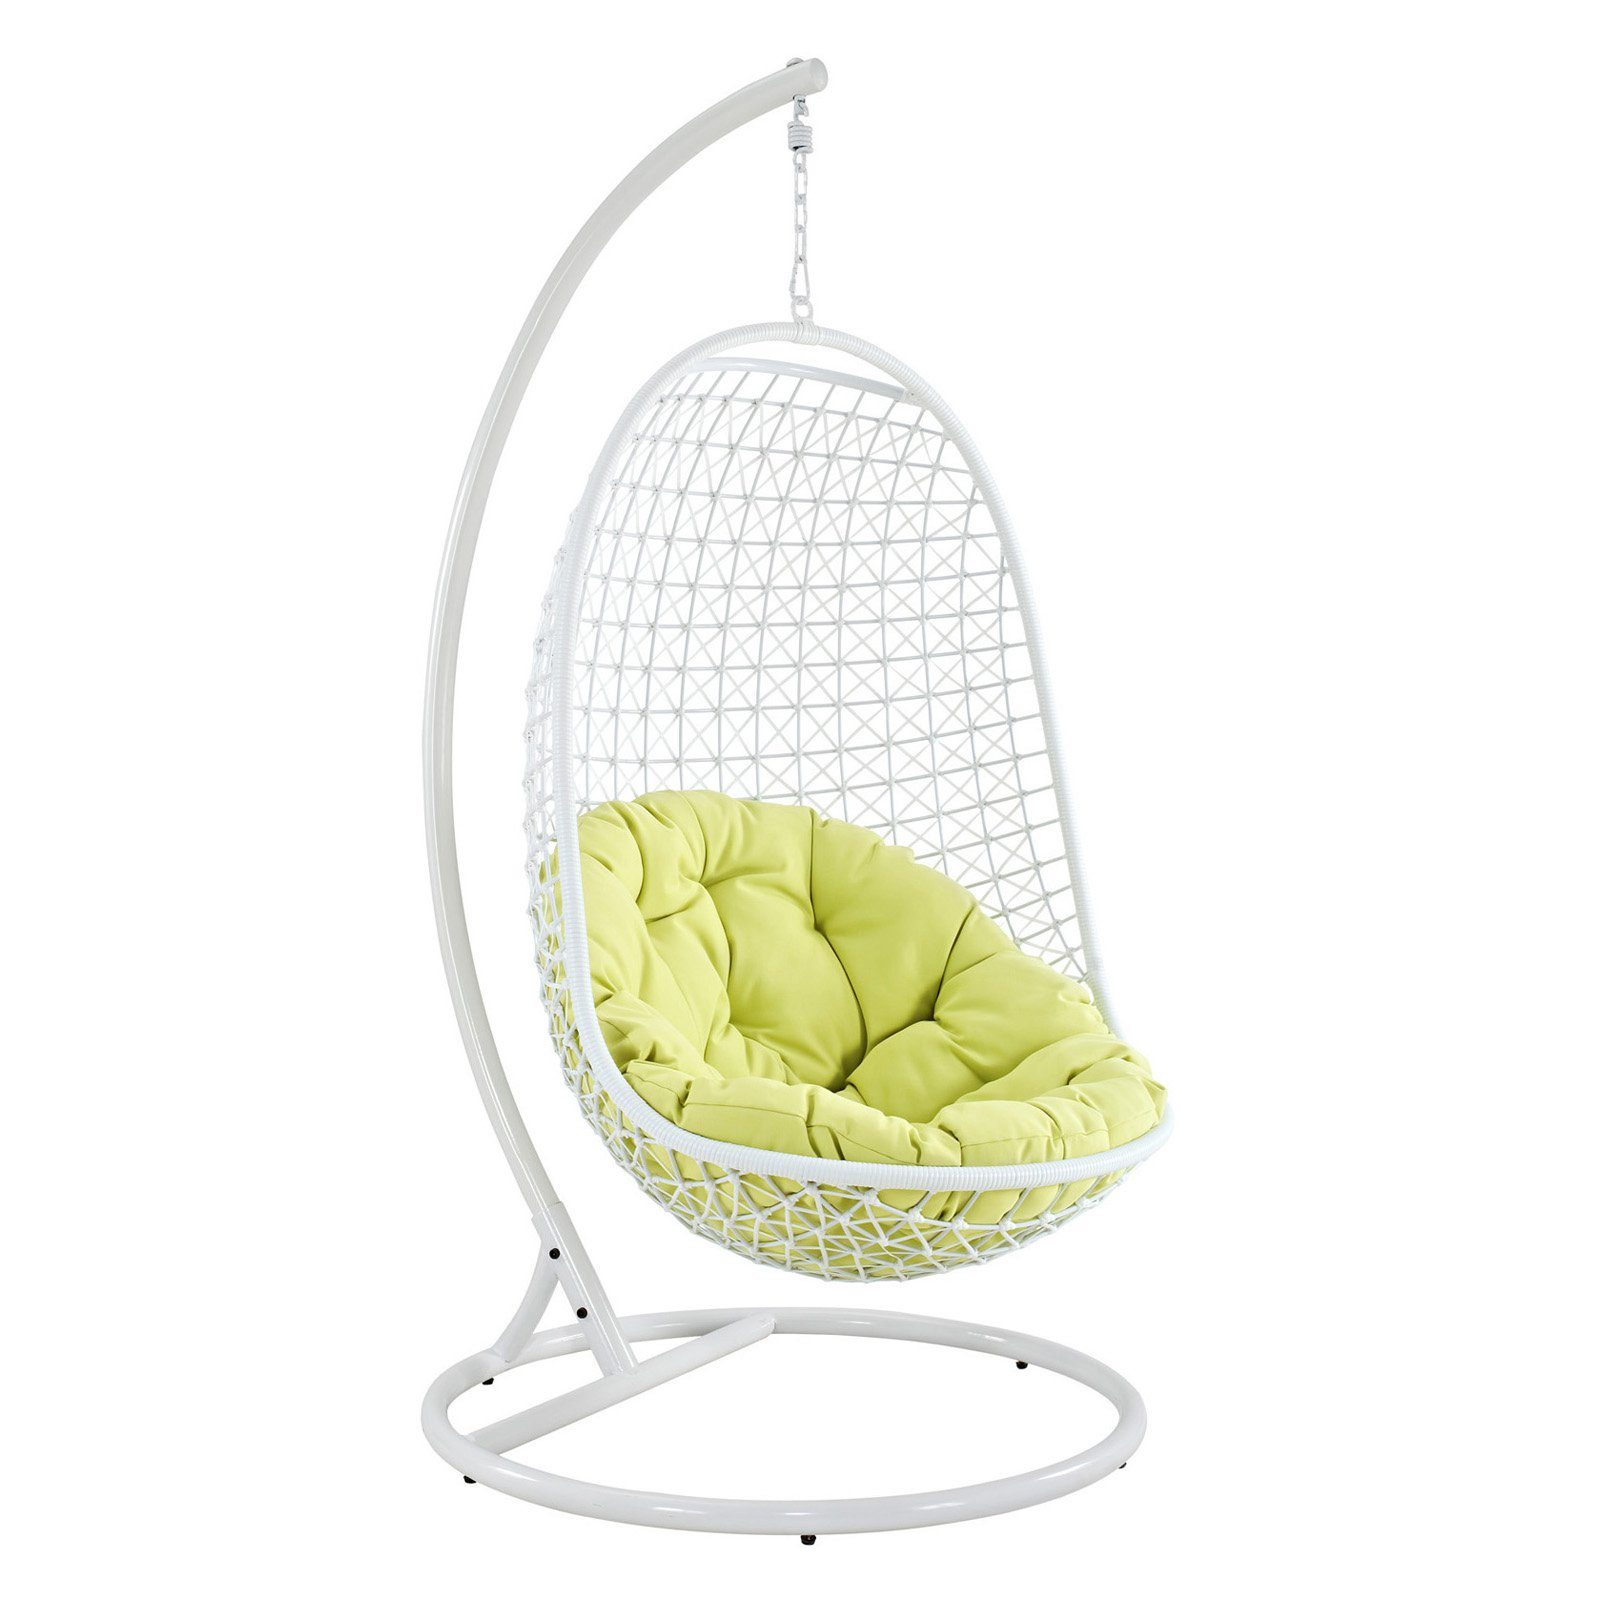 Modway Encounter Swing Outdoor Patio Fabric Lounge Chair In White